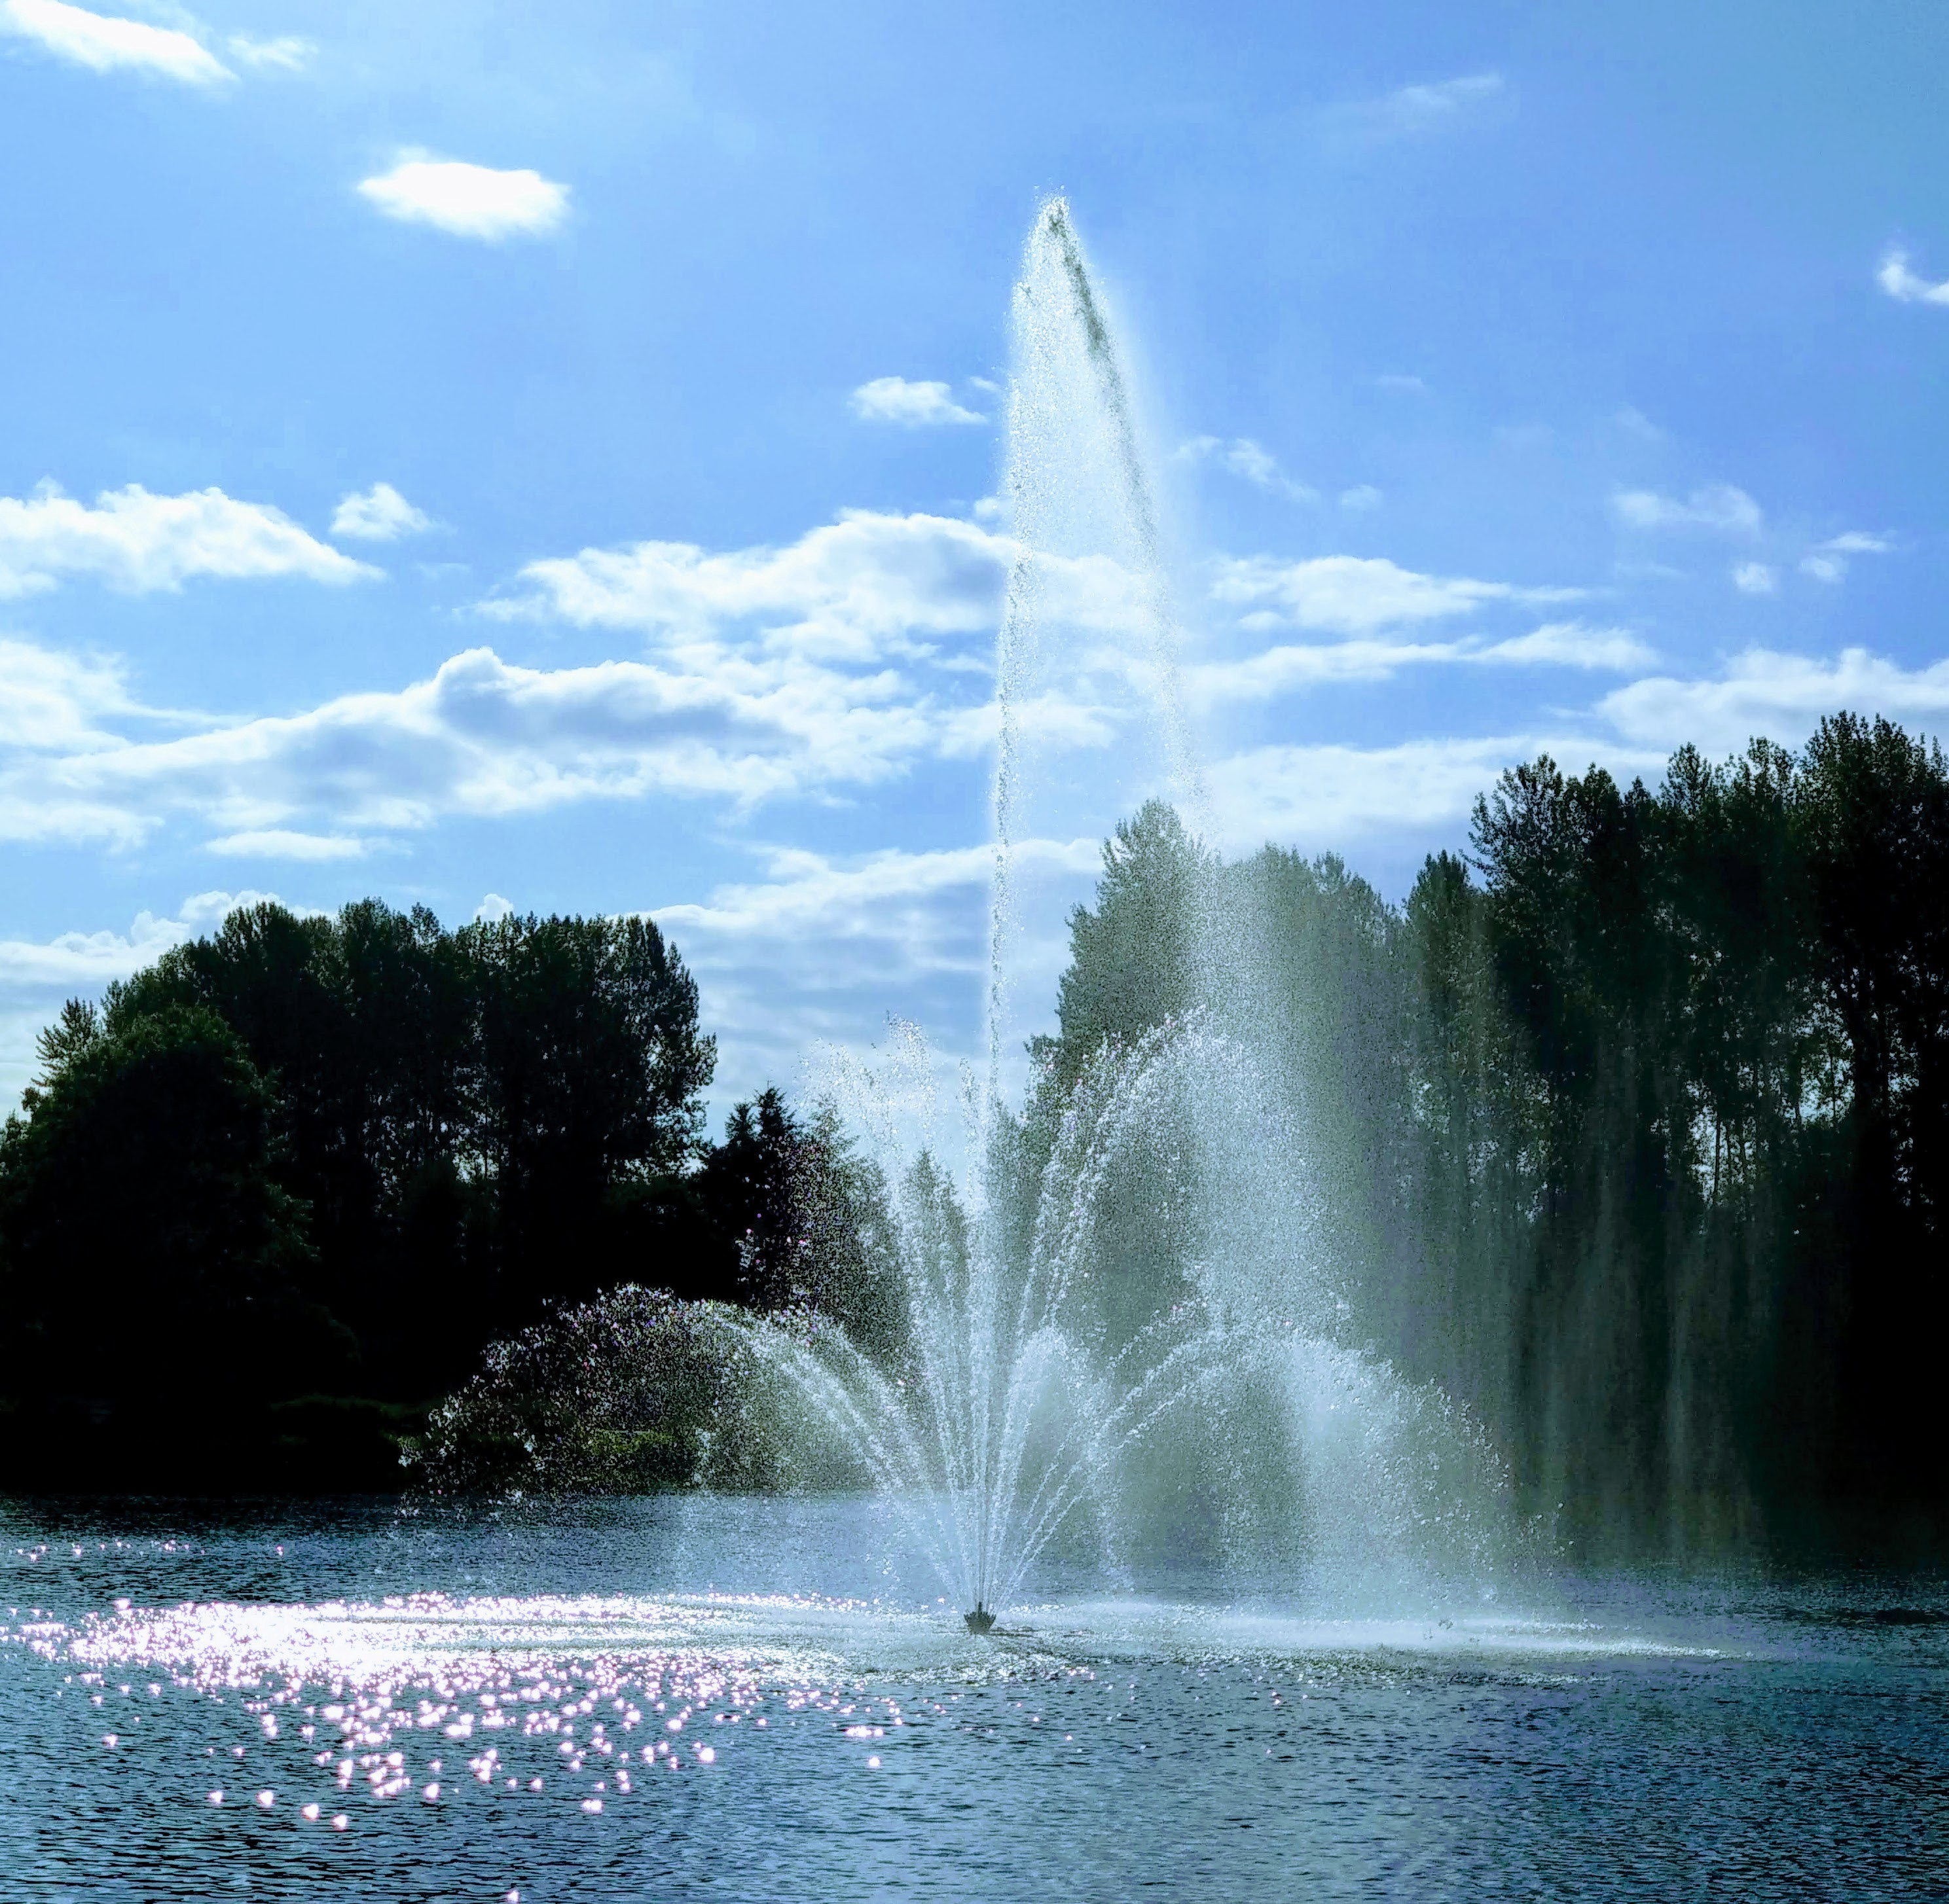 A fountain in the middle of a lake against a backdrop of trees and blue sky.